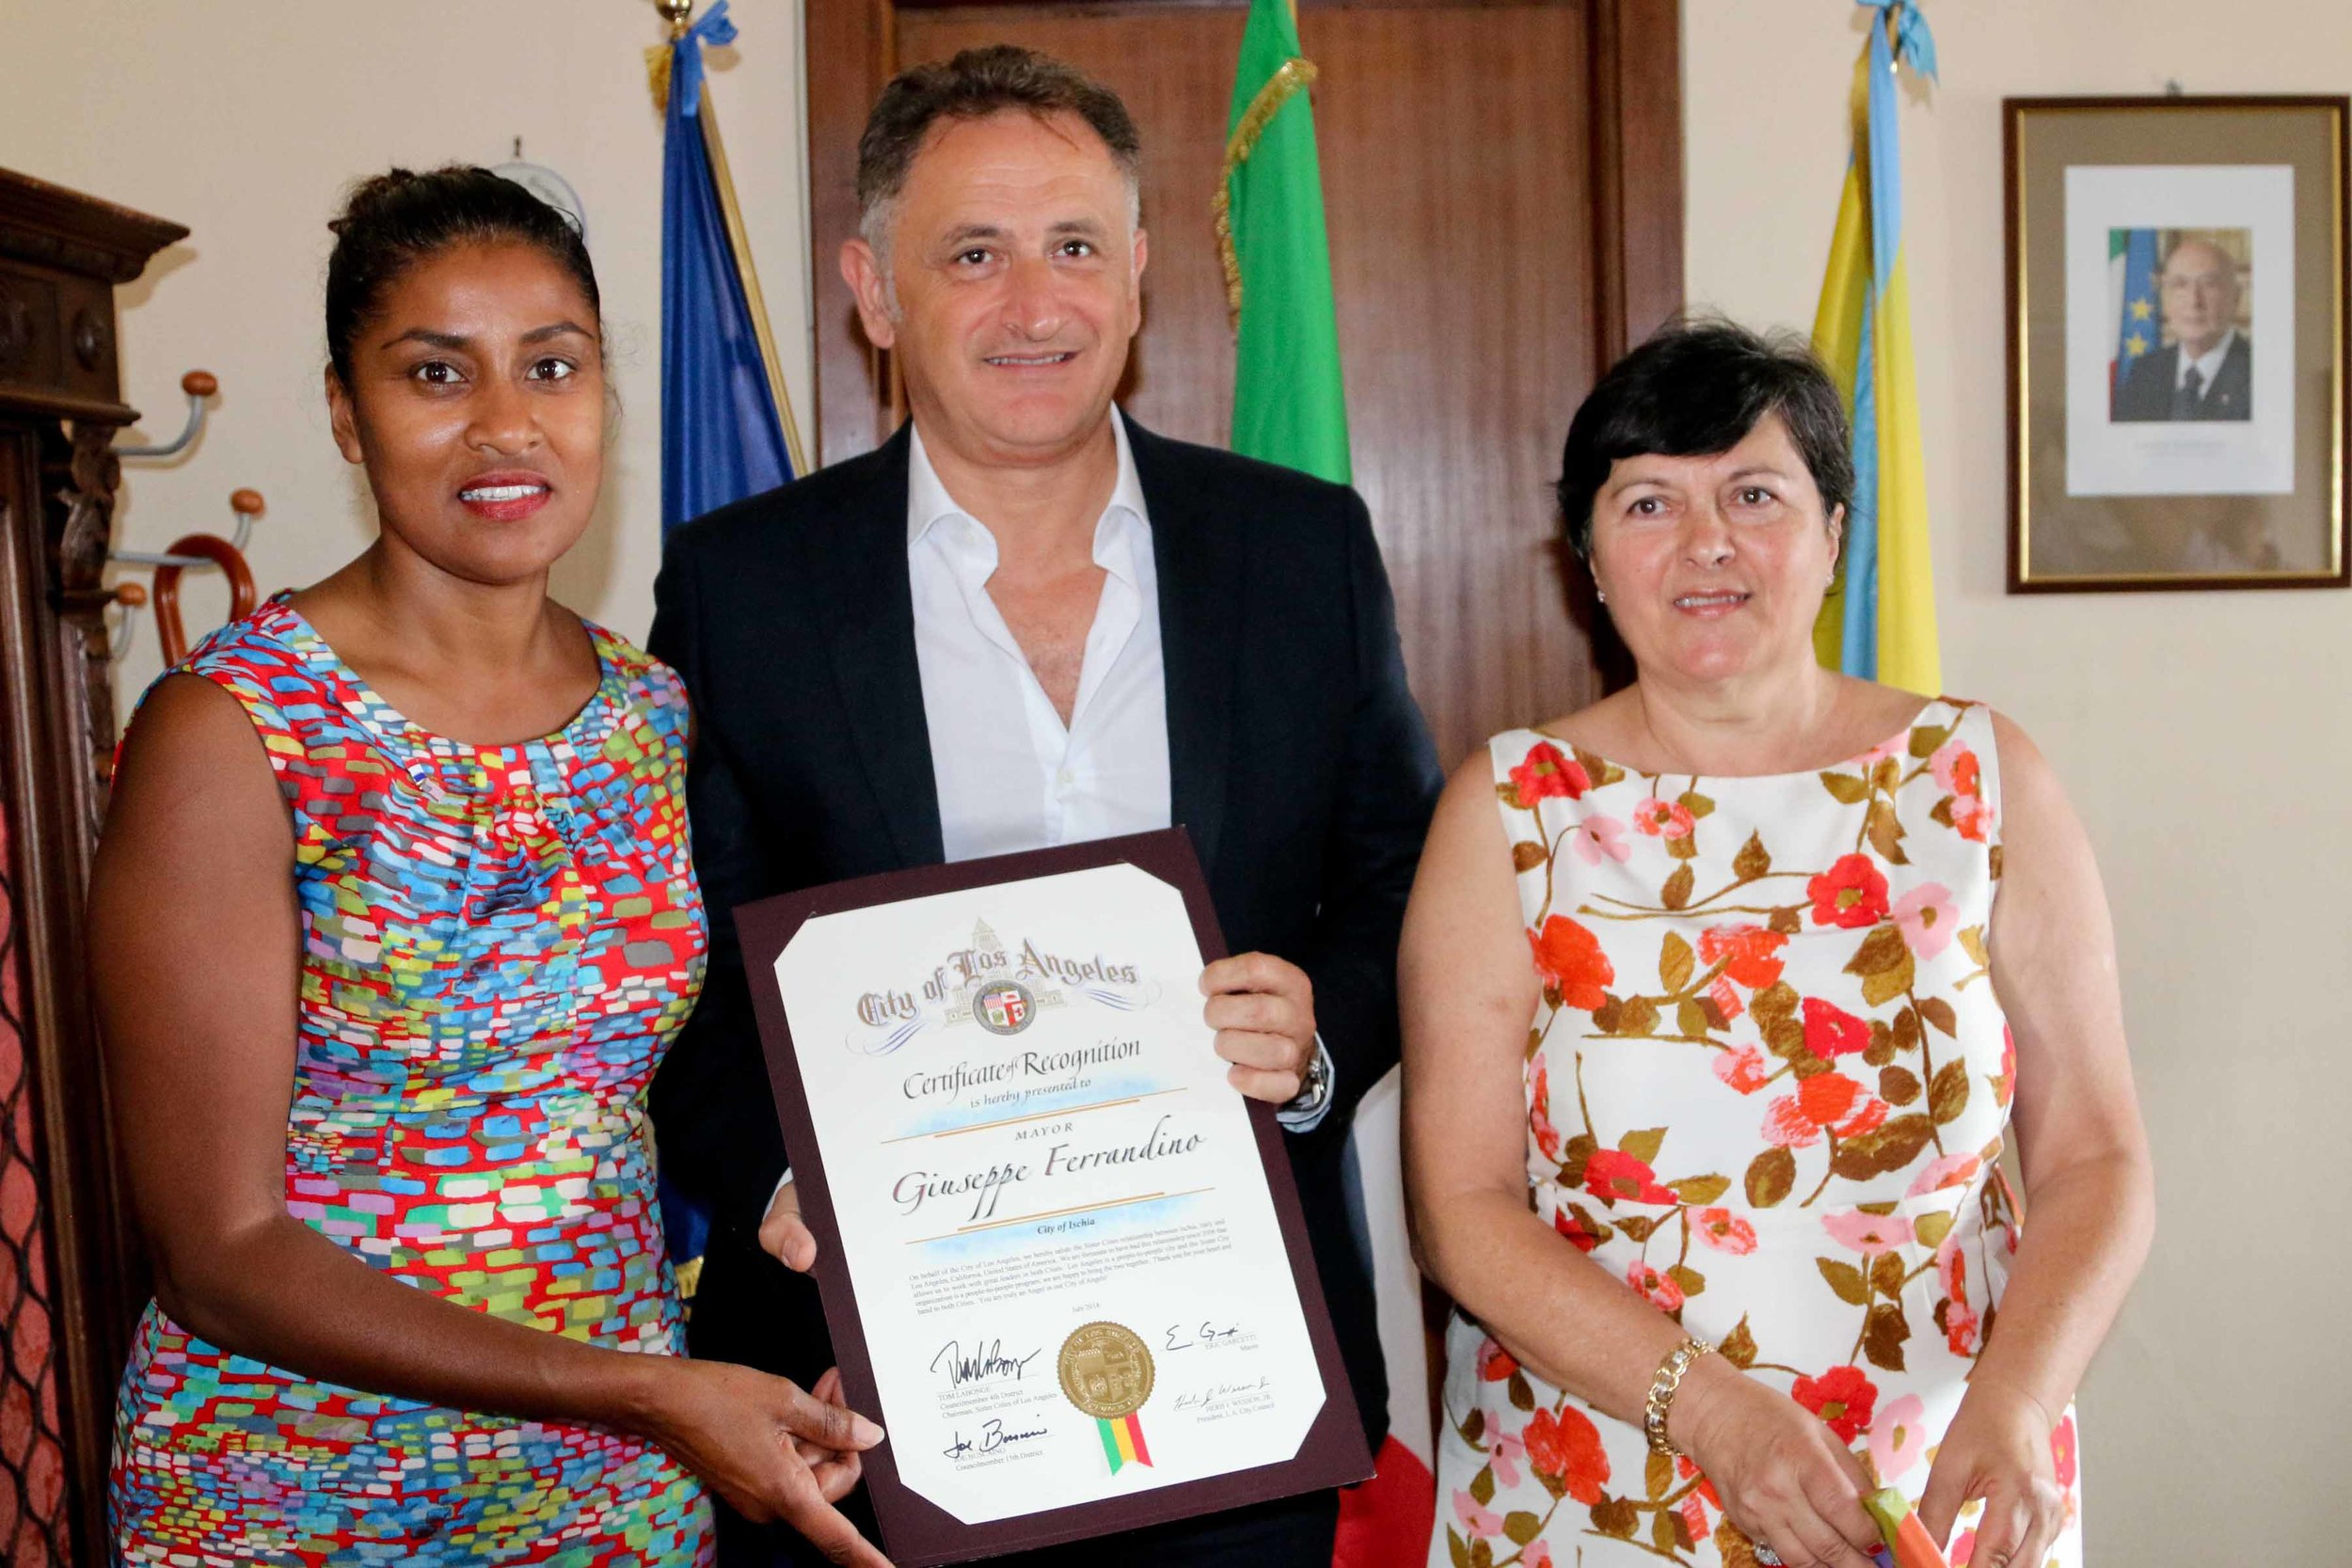 Director of Sister Cities of LA, Kamilla Blanche, Mayor of Ischia, Giuseppe Ferrandino and President of Ischia Sister cities of LA, Carmella Fornicello